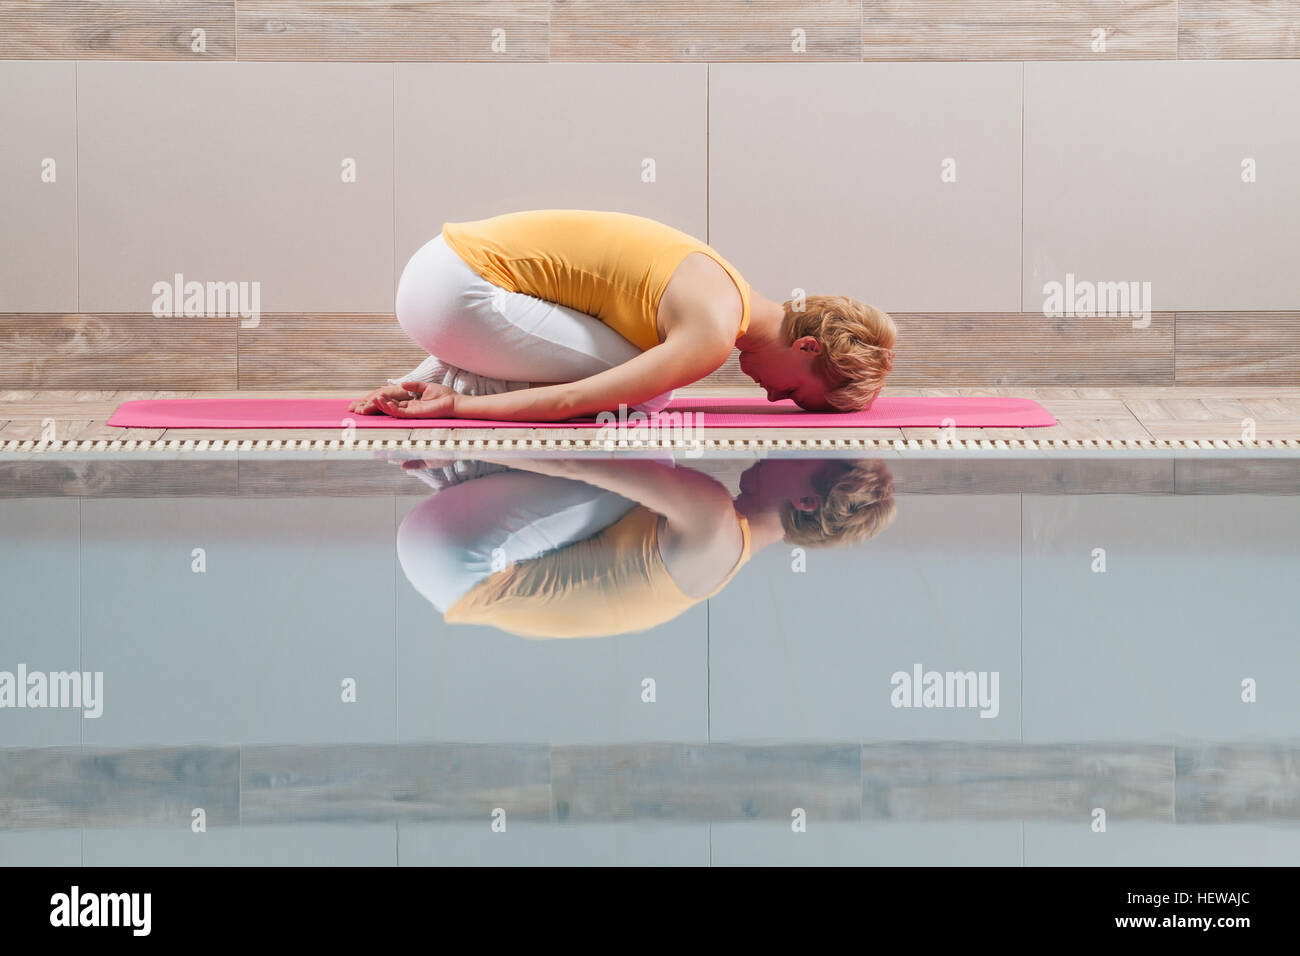 Young woman is practicing yoga. - Stock Image